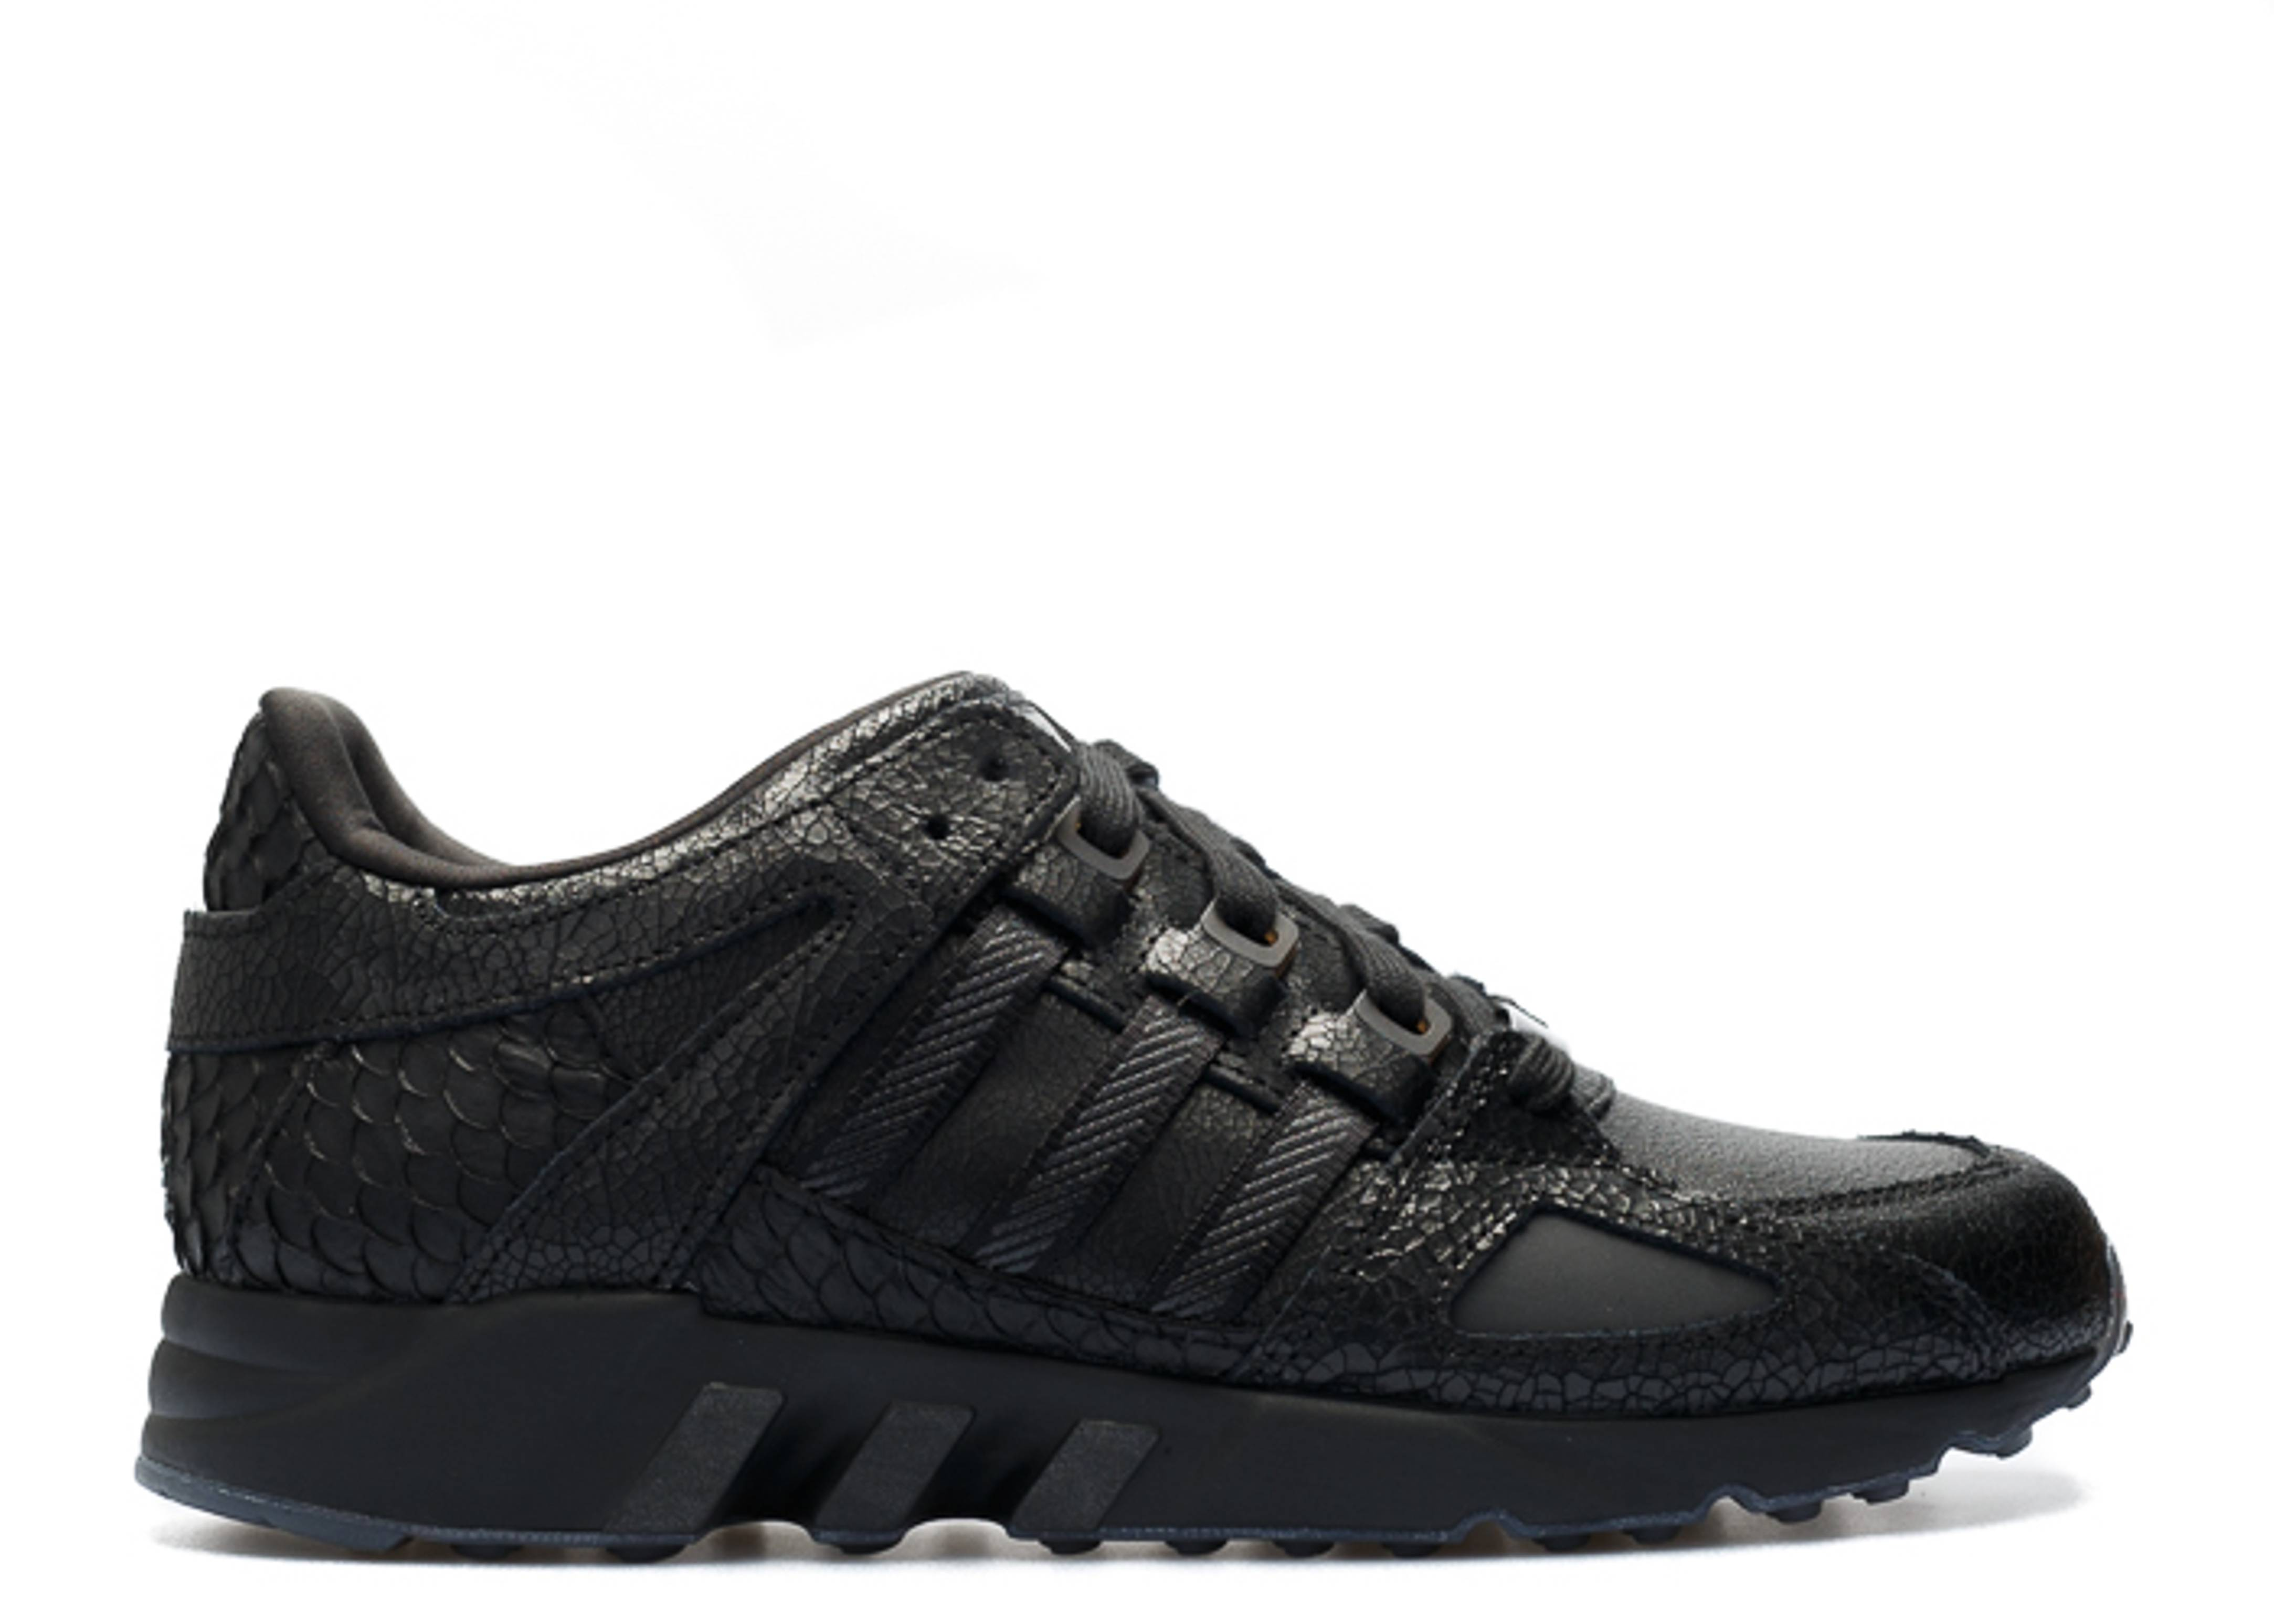 Adidas Eqt King Push For Sale